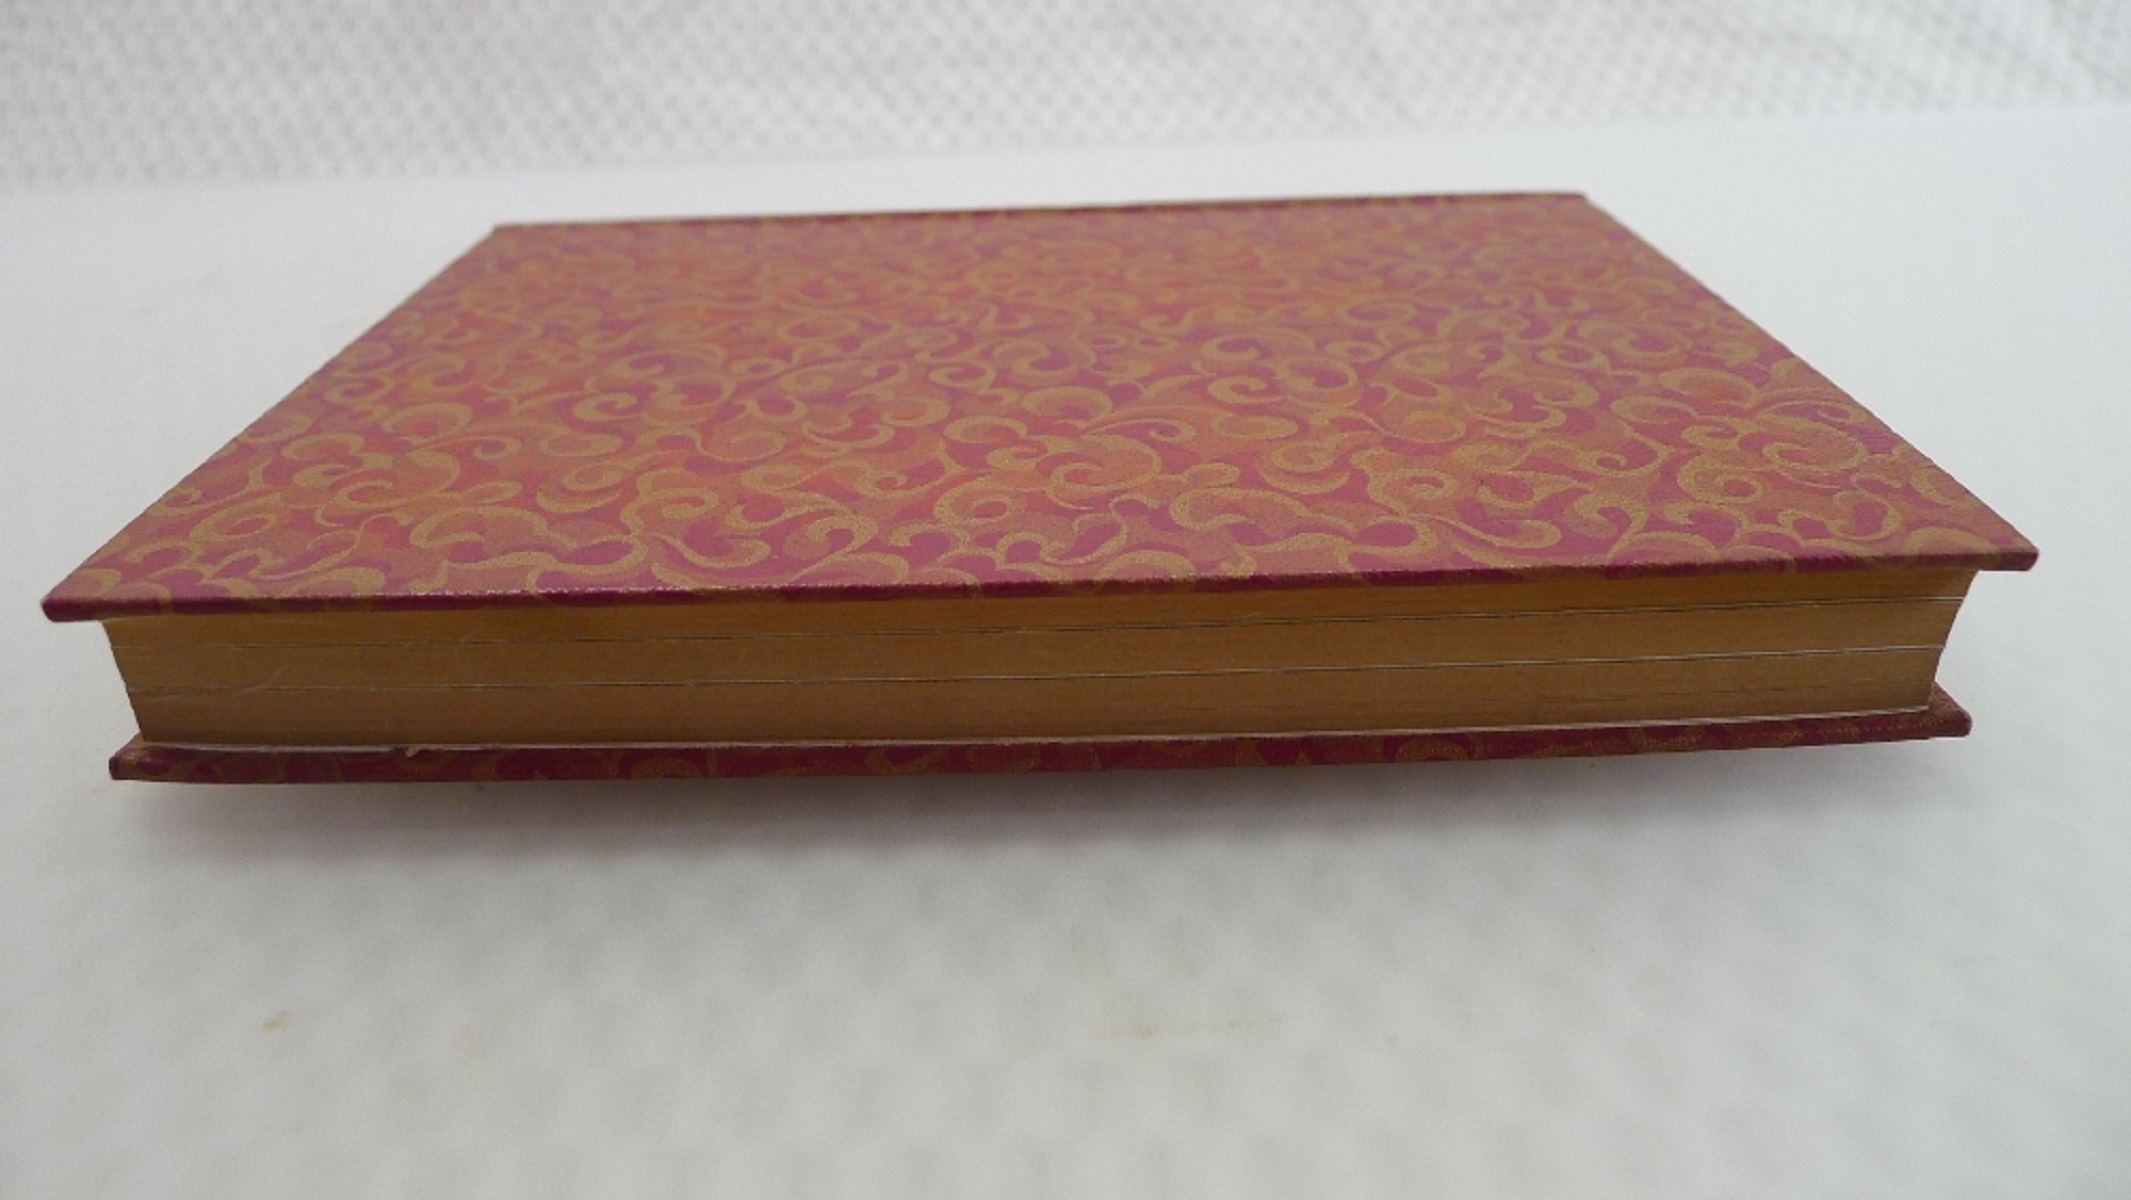 Lords and Ladies by Cecil T Prime published by Collins London 1960 First Edition A New Naturalist - Image 3 of 5